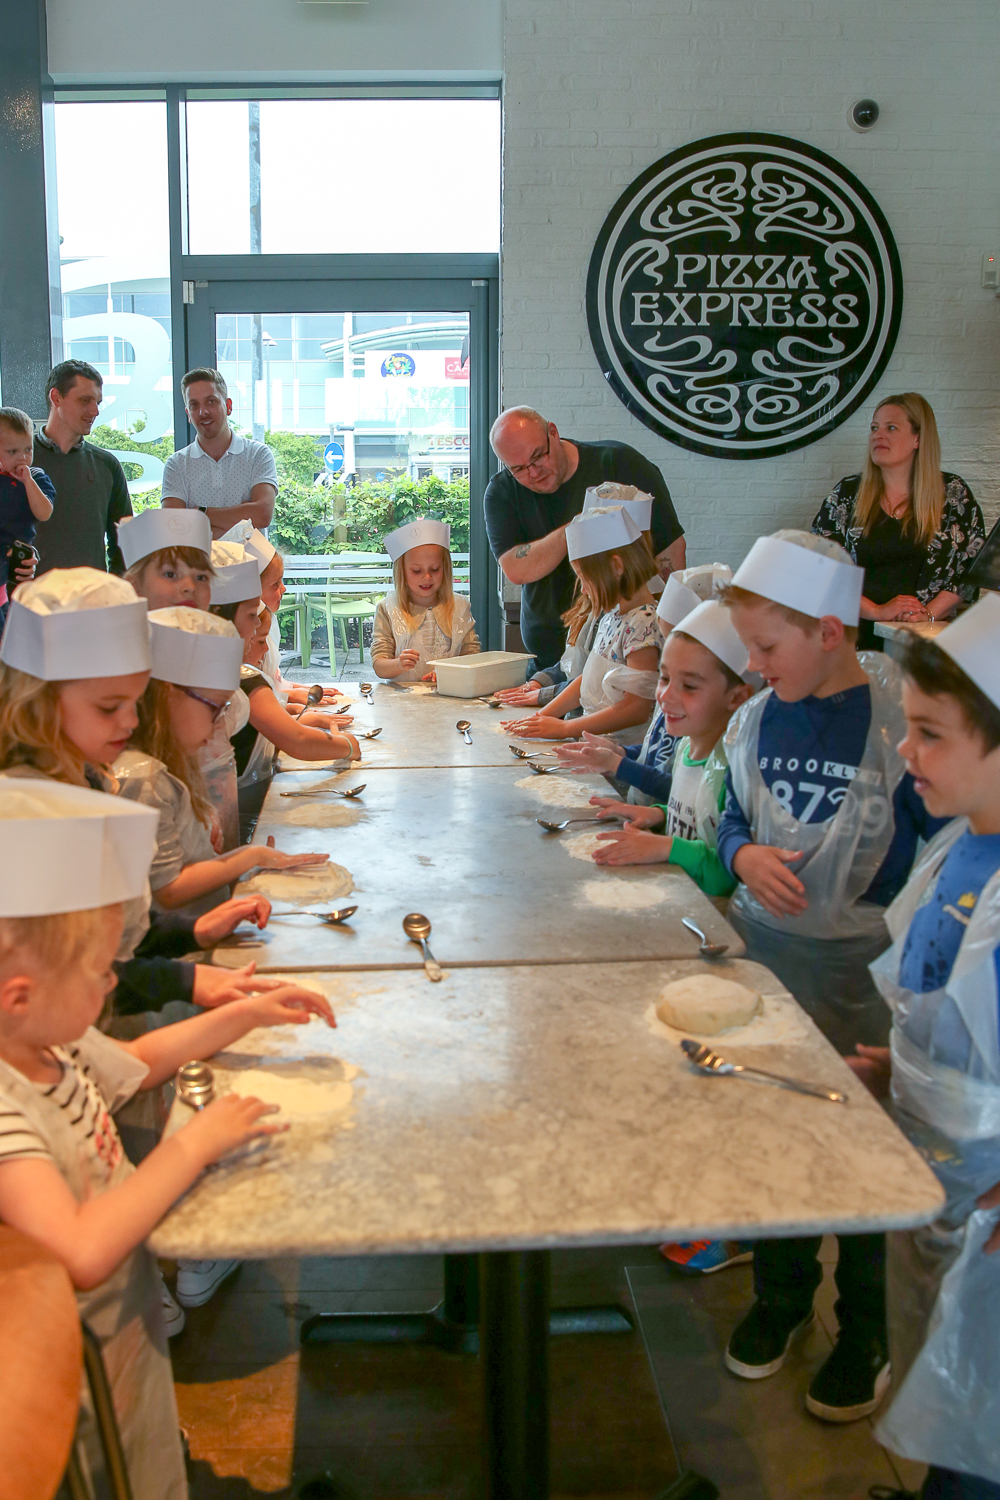 Pizza-Express-Kids-indoor-Birthday-Party-family-photographer-South-Wales-Natalia-Smith-Photography-0001.jpg